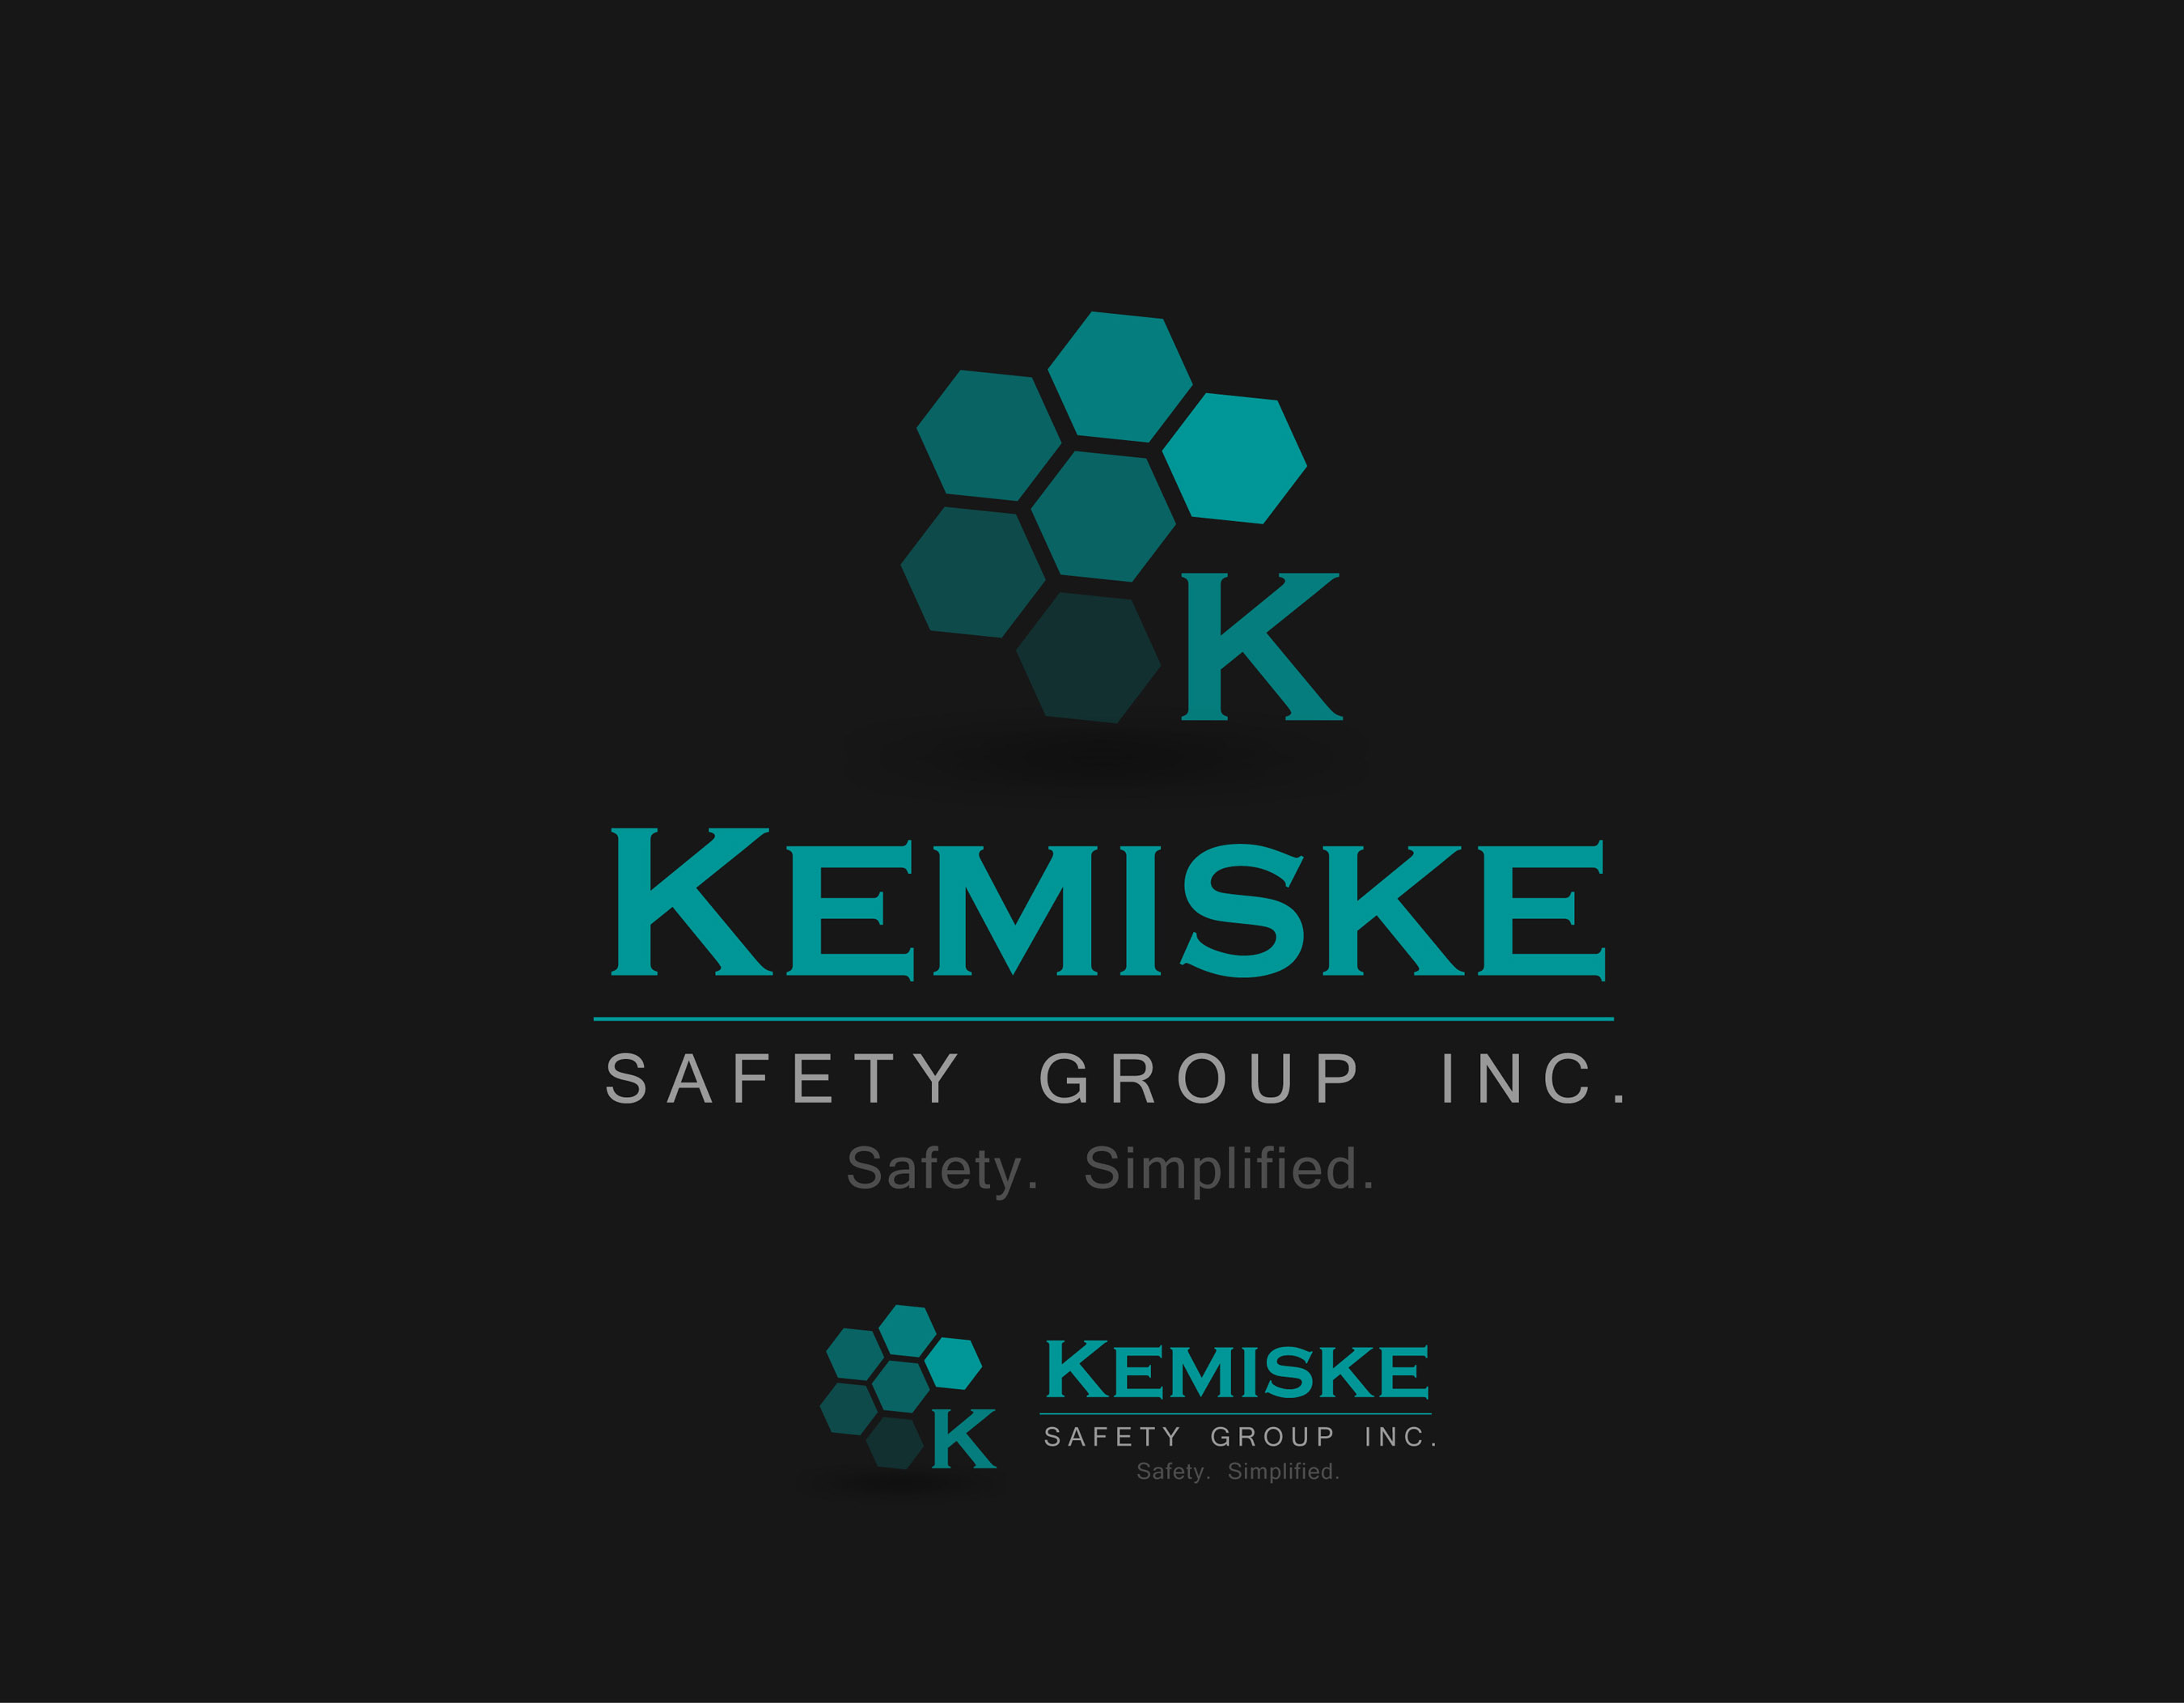 Logo Design by Mark Anthony Moreto Jordan - Entry No. 91 in the Logo Design Contest New Logo Design for Kemiske Safety Group Inc..